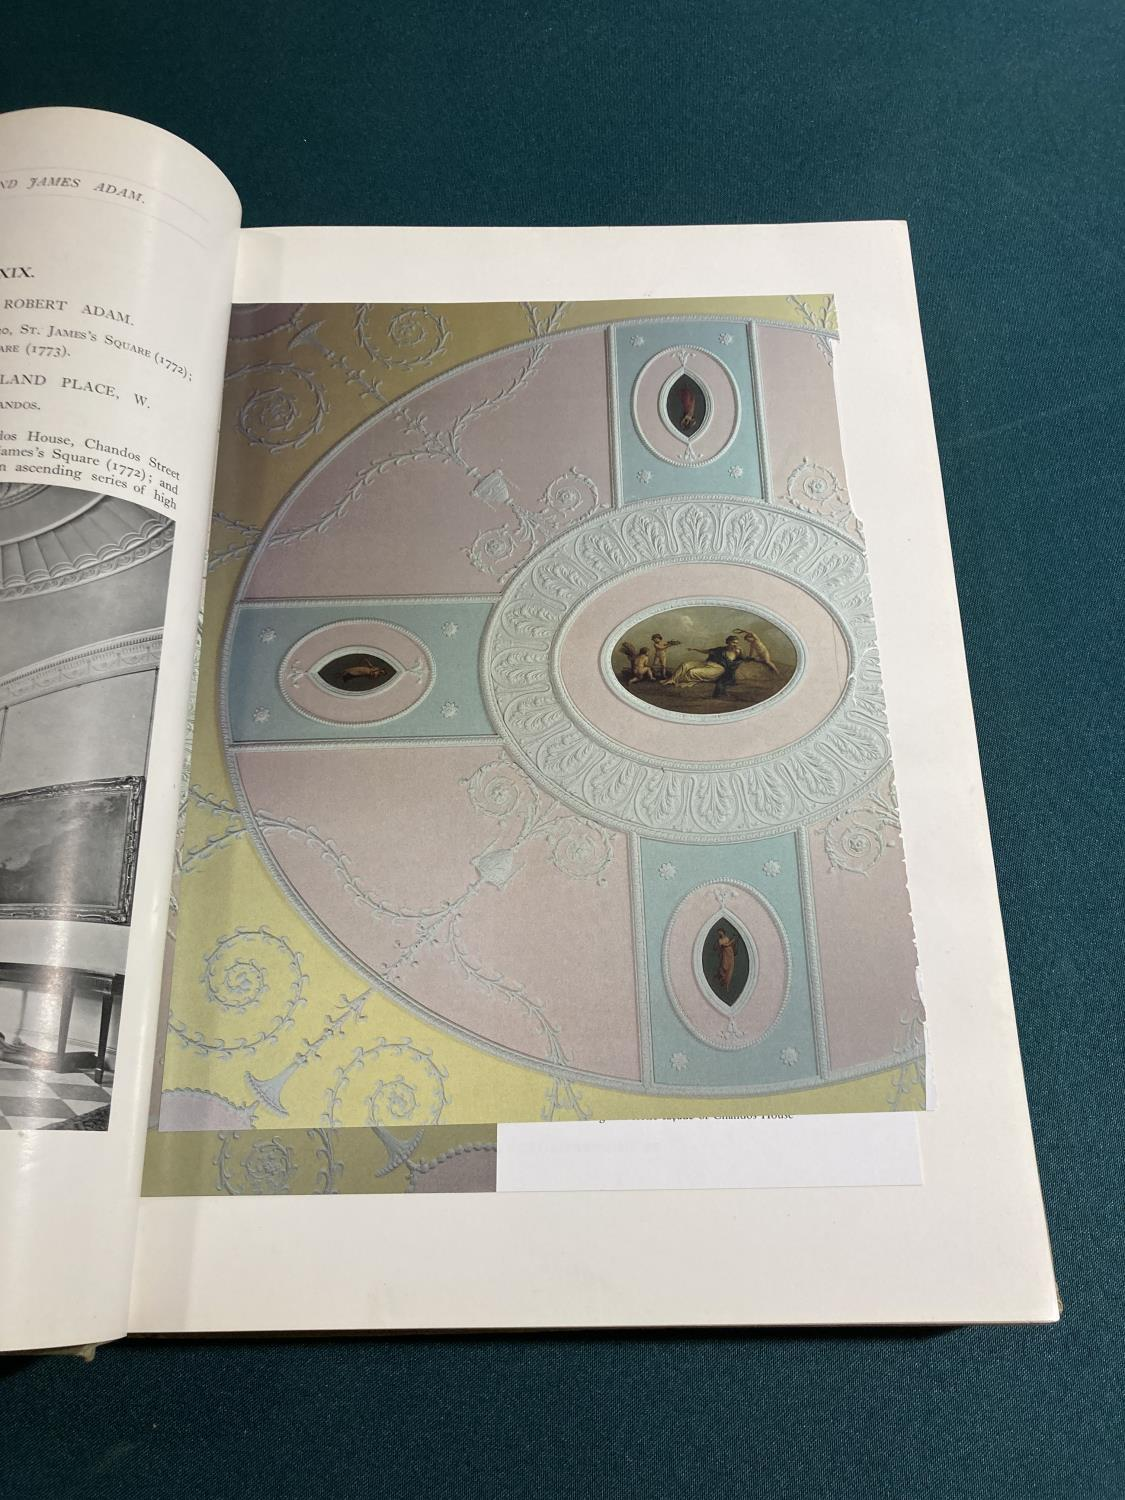 Bolton, Arthur T. The Architecture of Robert and James Adam, 2 volumes, first edition, plates, - Image 4 of 22